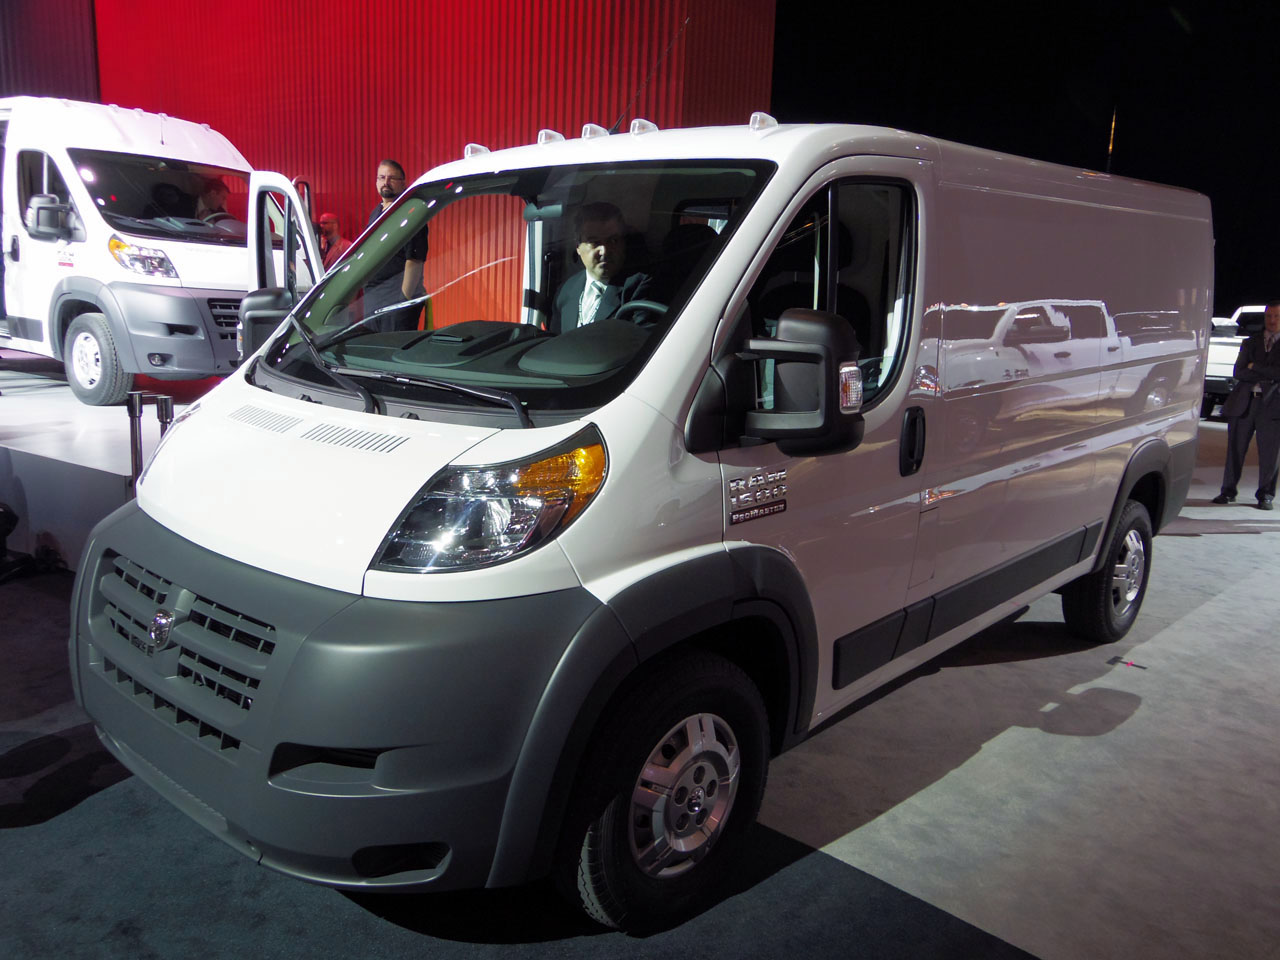 2014 ram promaster chicago 2013 photo gallery autoblog. Black Bedroom Furniture Sets. Home Design Ideas